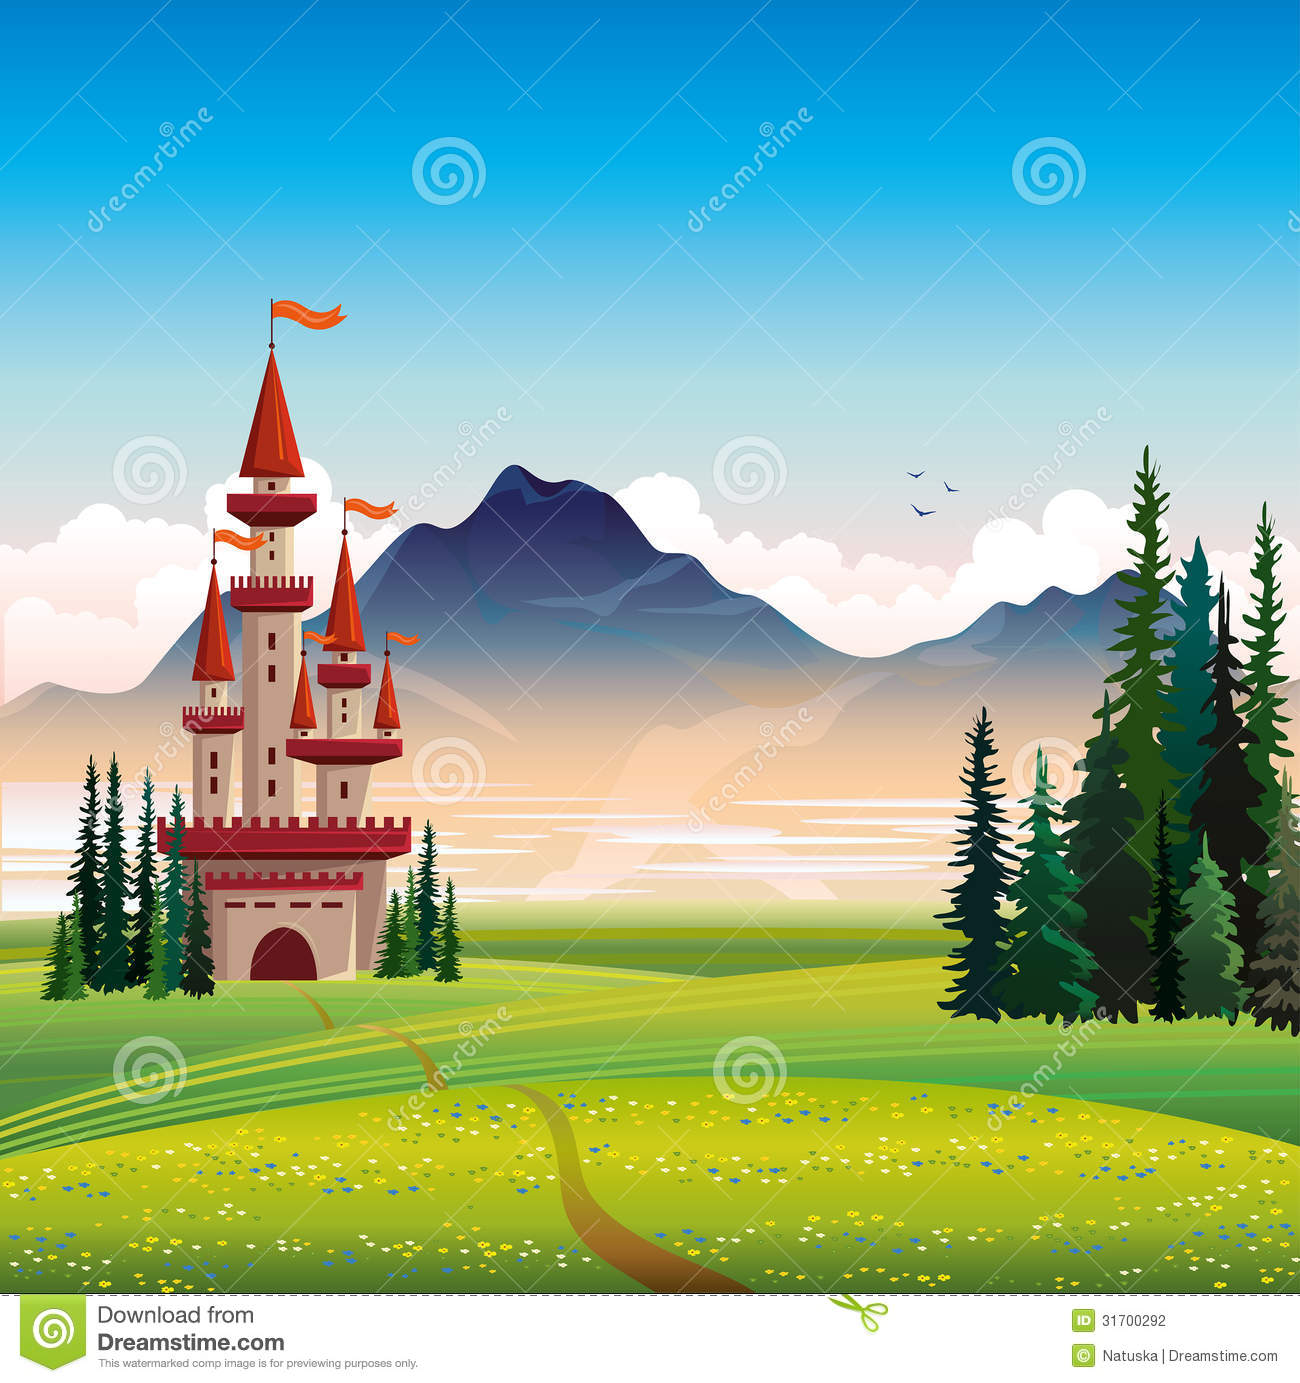 Summer Landscape With Castle And Green Field Stock